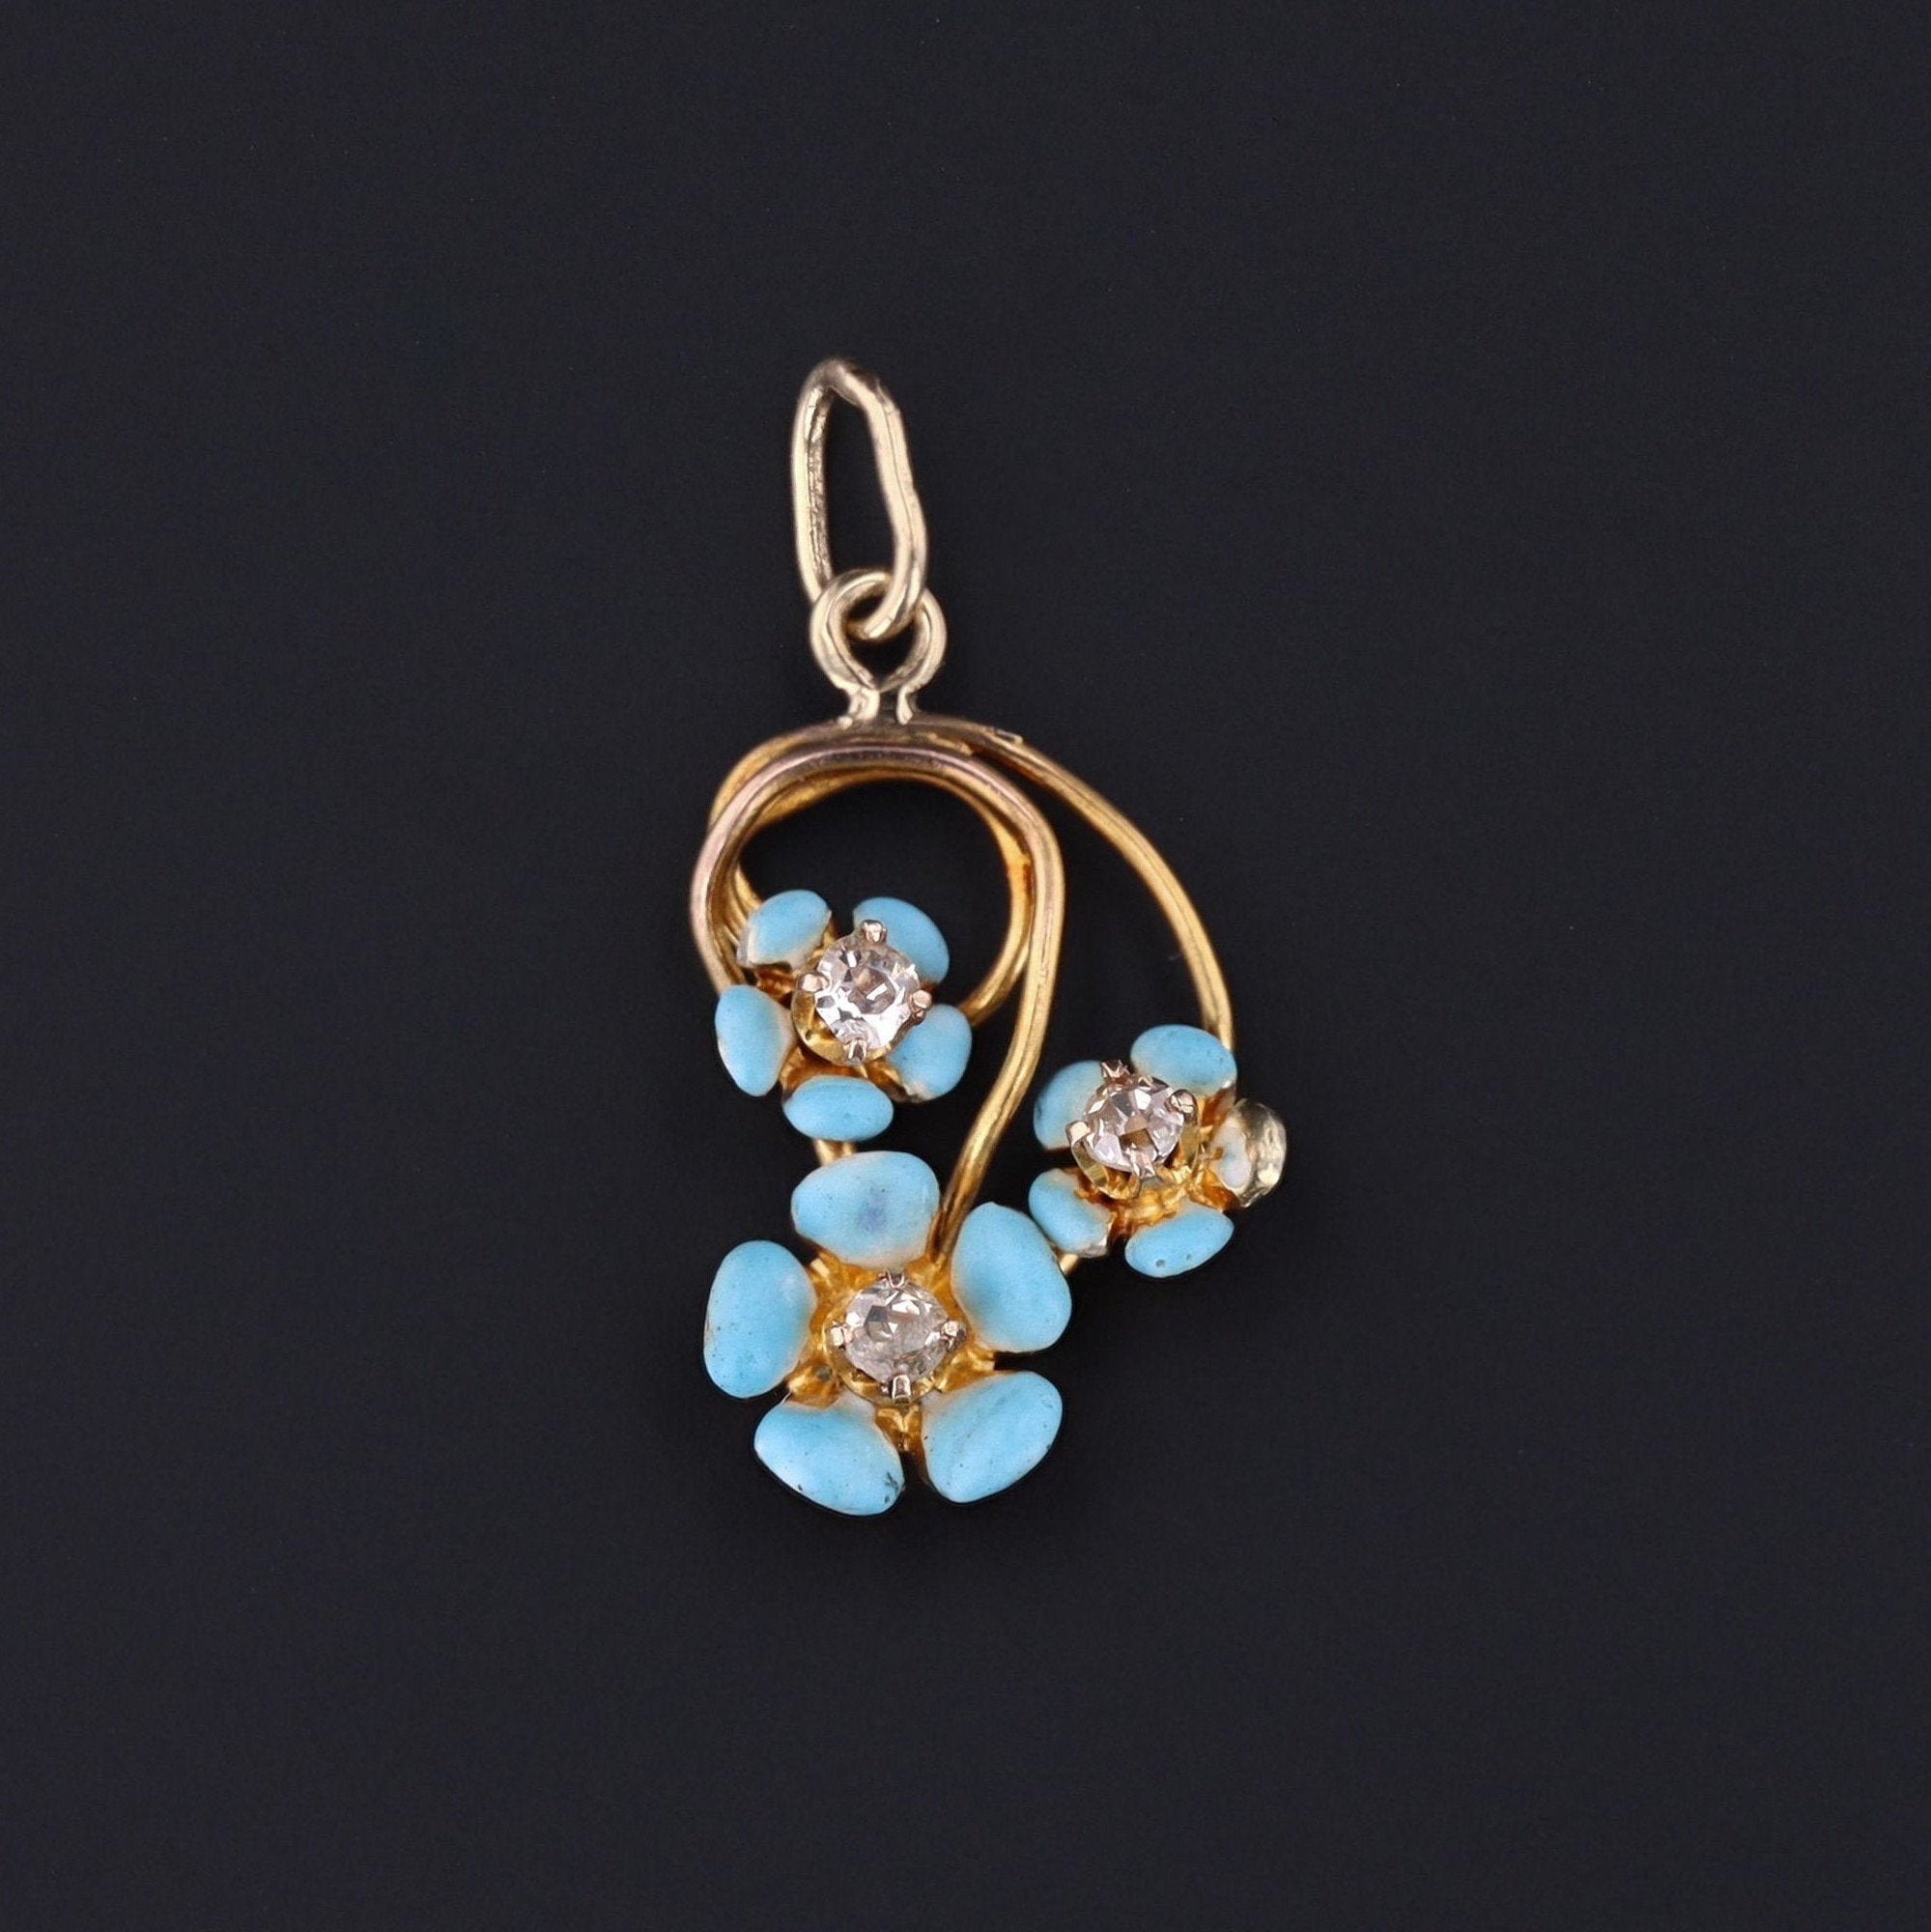 Forget-Me-Not Flower Charm | 14k Gold & Diamond Flower Pendant | Antique Conversion Pendant